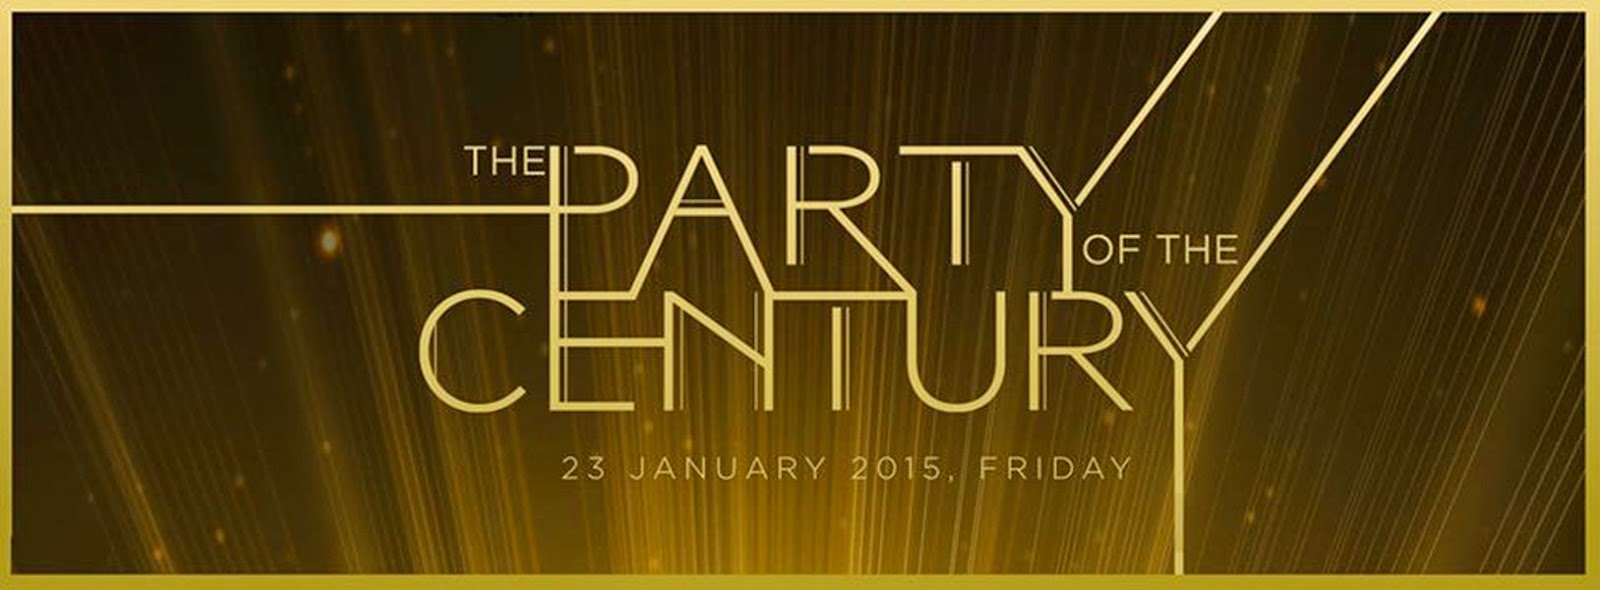 The Party Of The Century by Empire City, Damansara Perdana